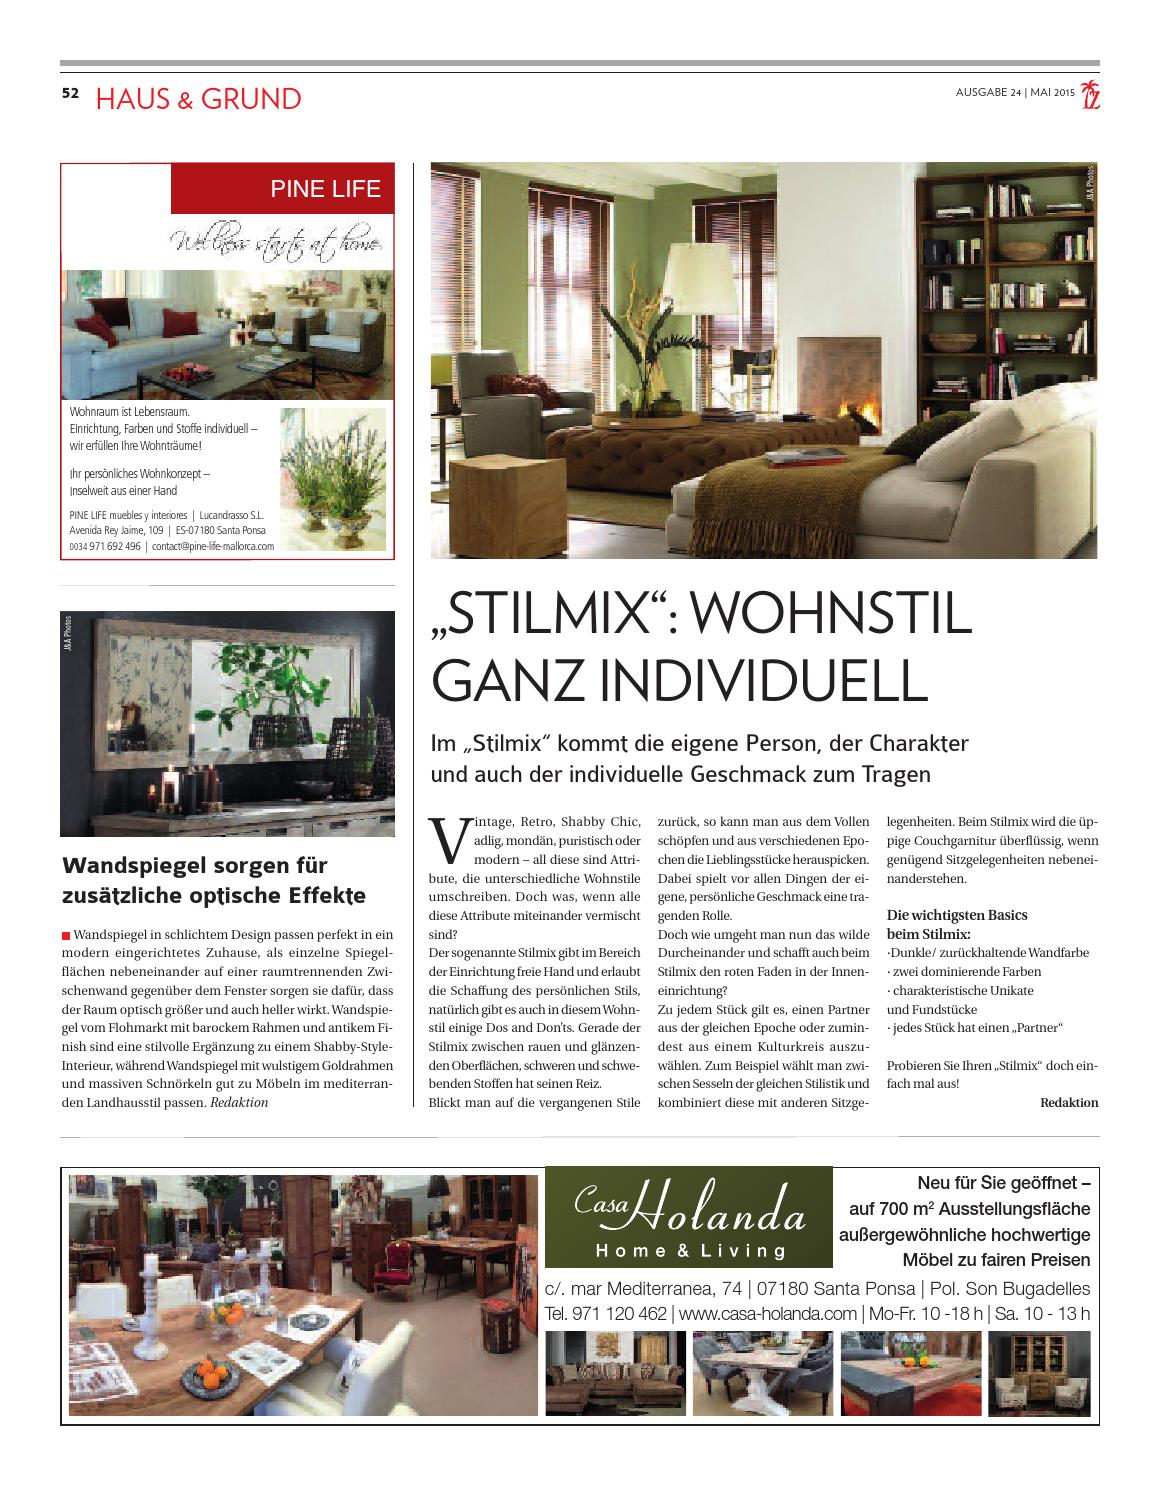 Life Muebles Die Inselzeitung Mallorca Mai 2015